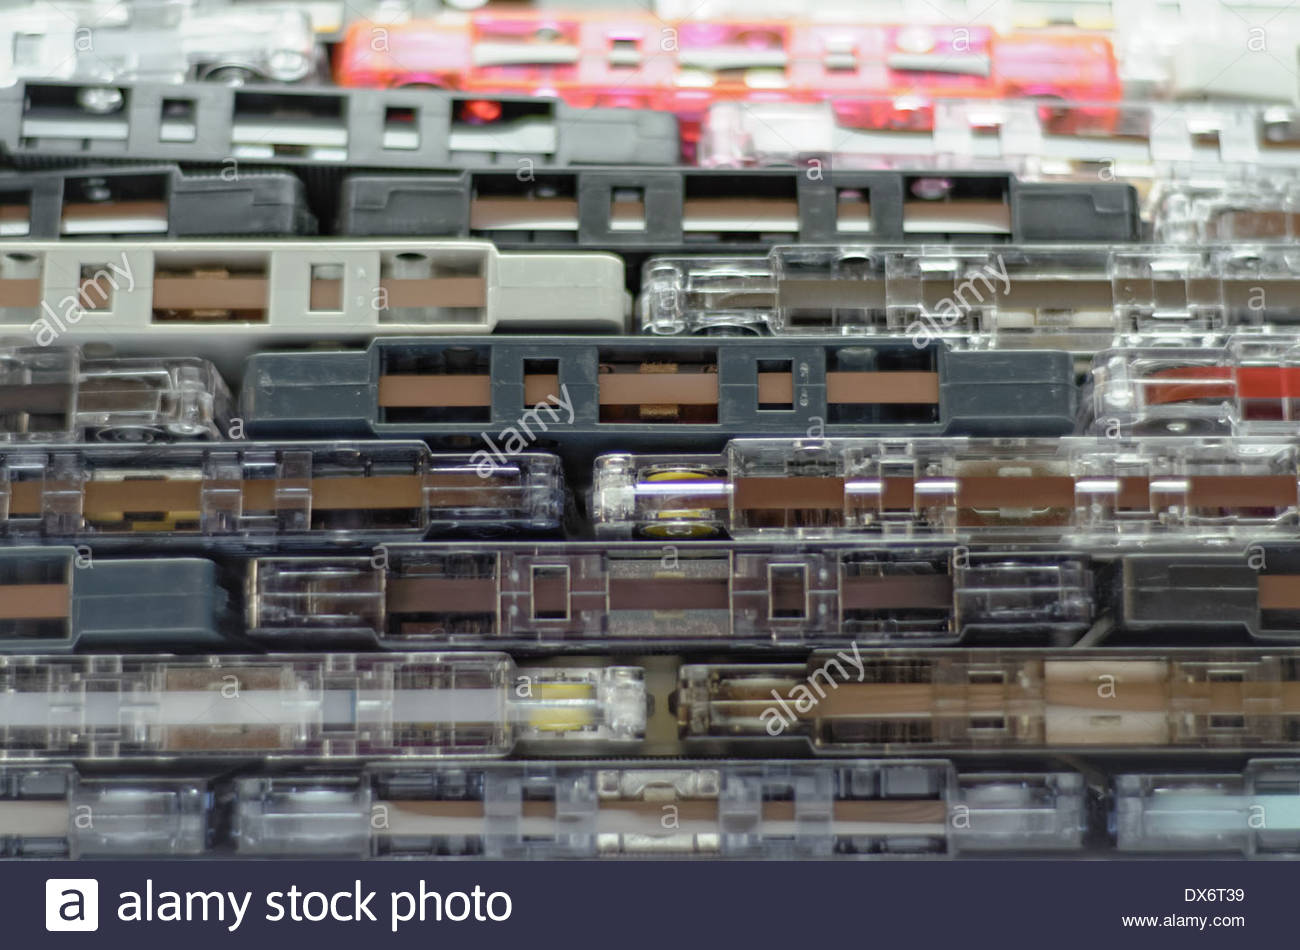 Pile of old audio cassette tapes - Stock Image